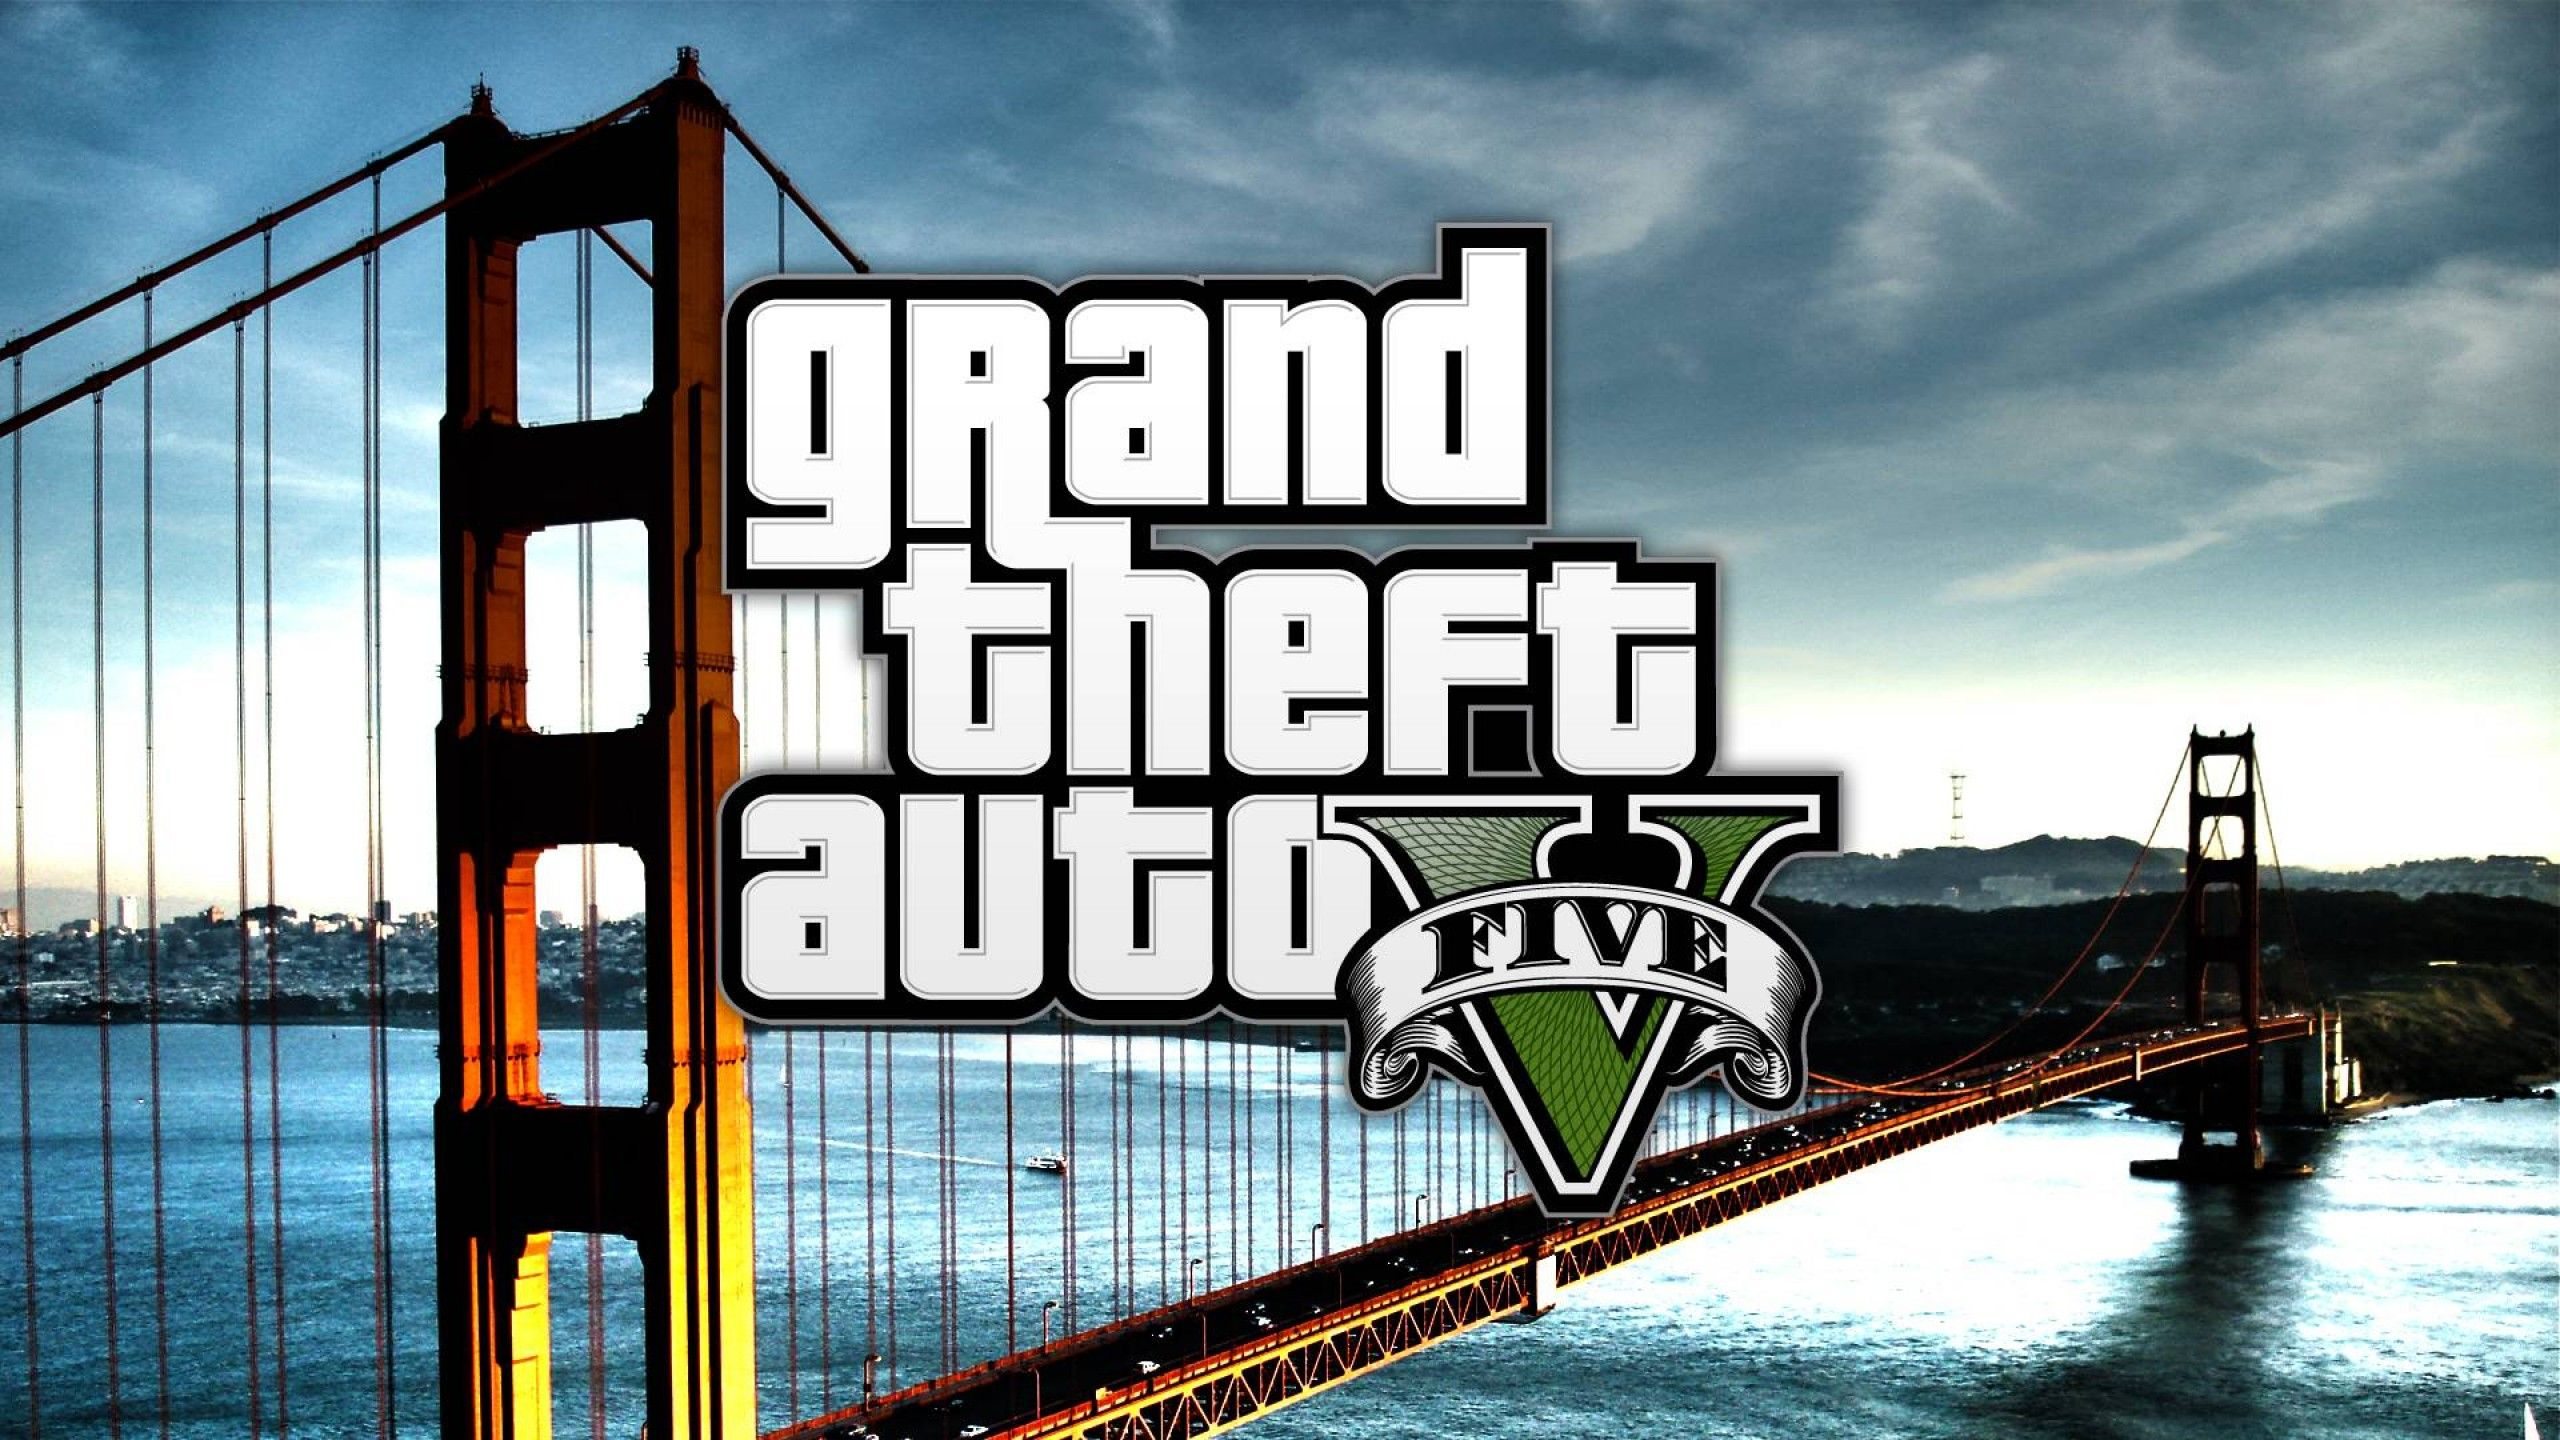 Download image gta5 pc android iphone and ipad wallpapers and - Grand Theft Auto V Hd Wallpapers Backgrounds Wallpaper 1920 1080 Gta 5 Wallpaper Hd